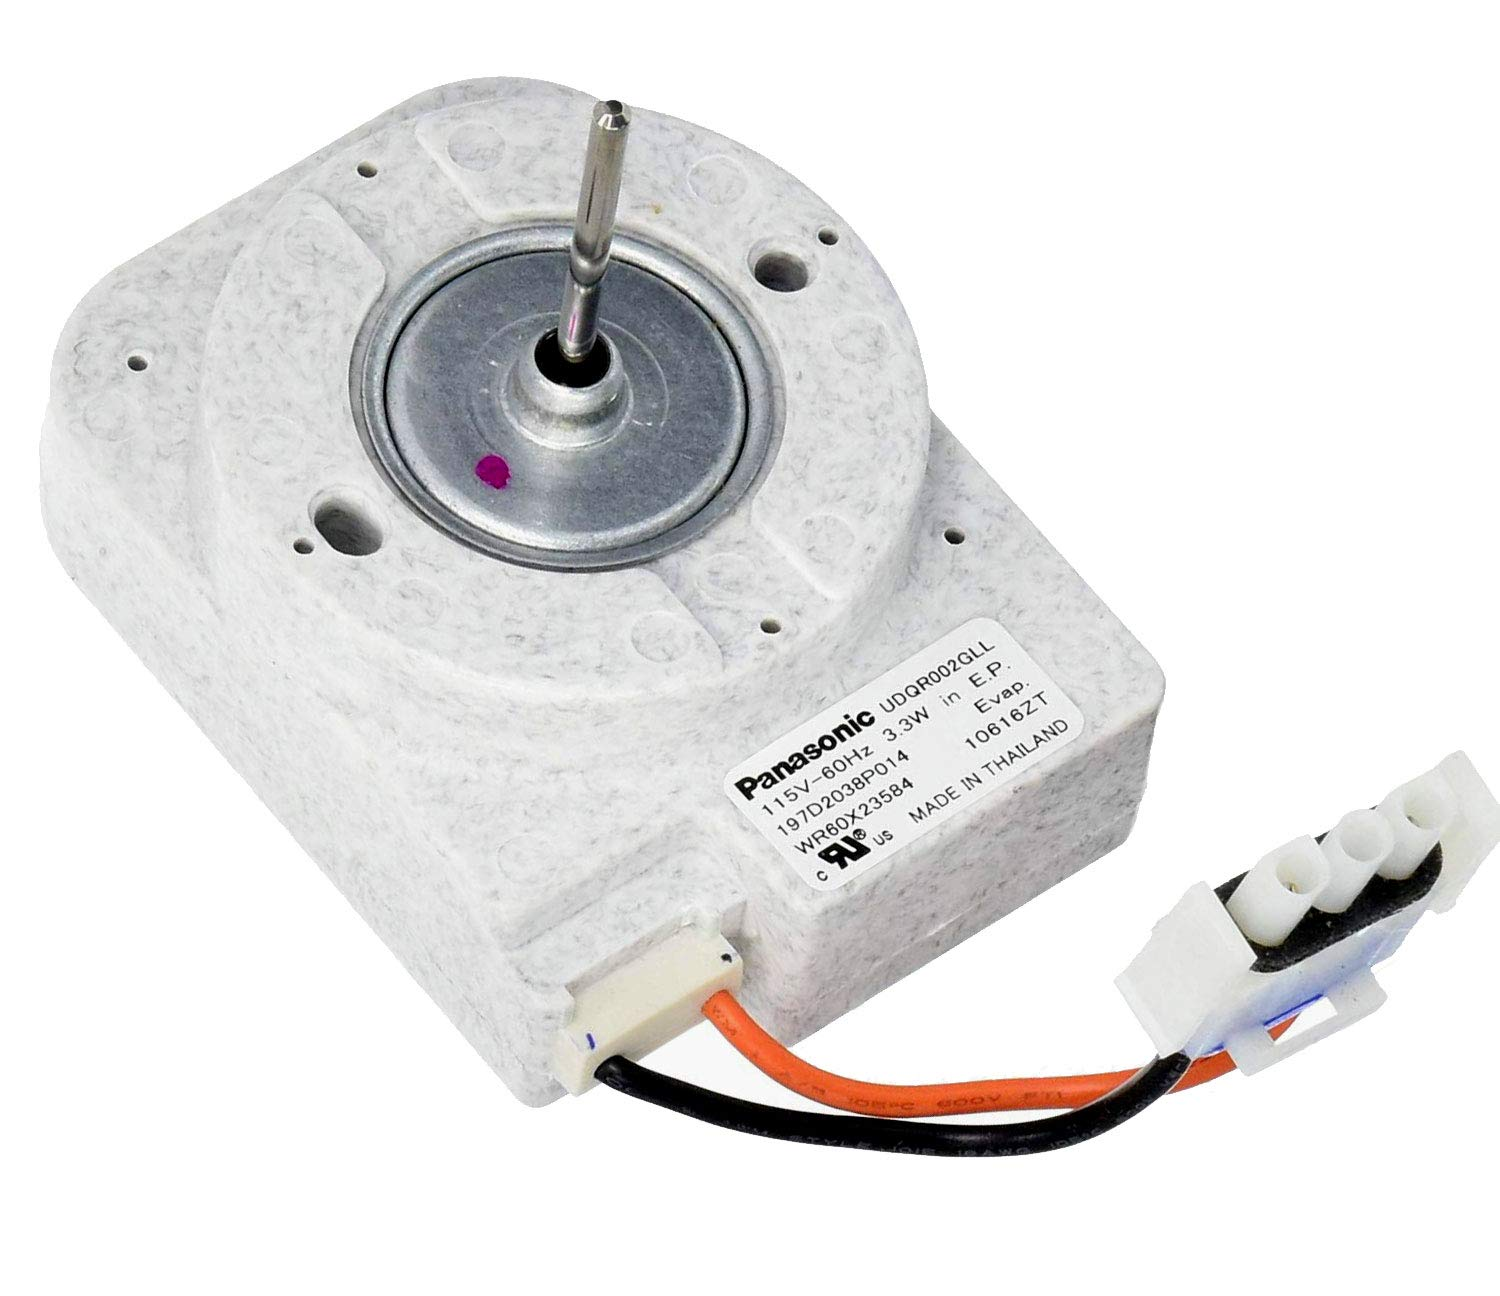 Refrigerator Evaporator Fan Motor that works with GE GTS16GSHJRSS by Refrigerator Parts